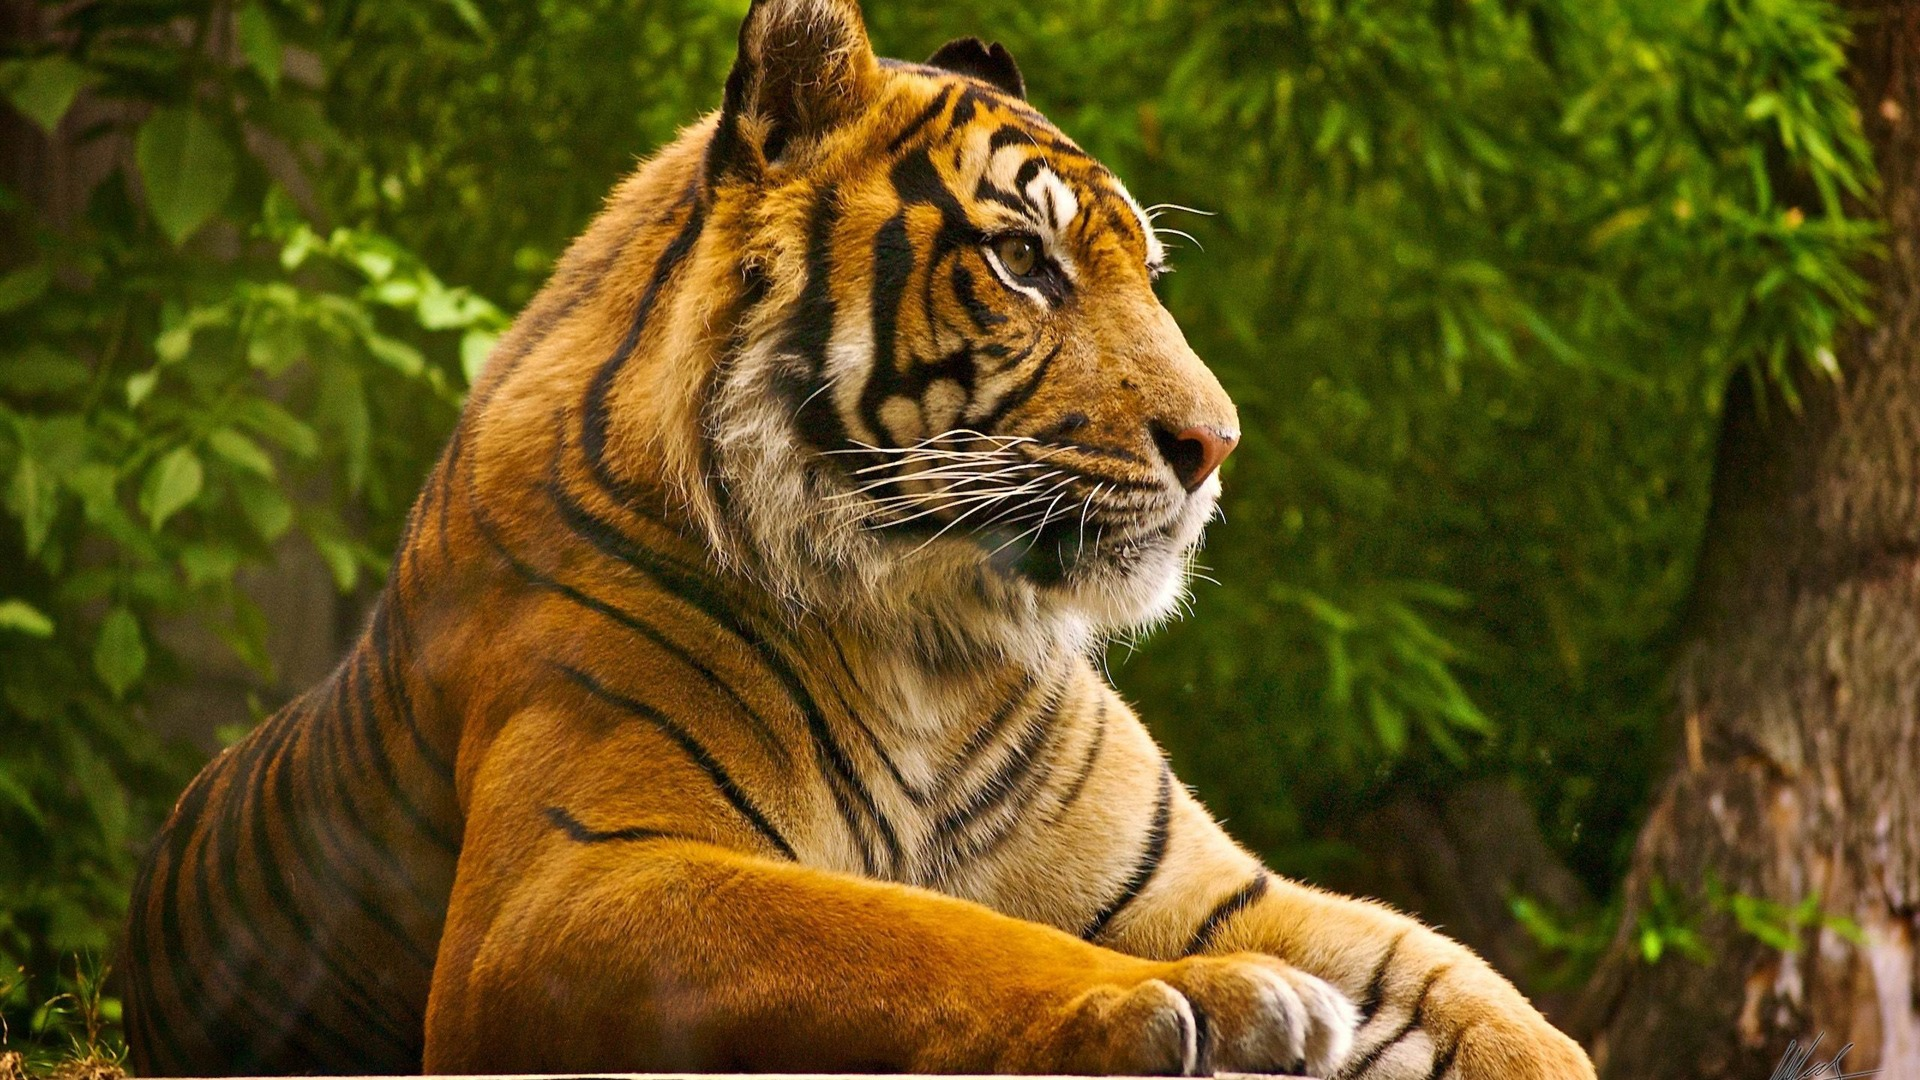 beautiful tiger wild animal desktop wallpaper Wallpaper HD Desktop 1920x1080